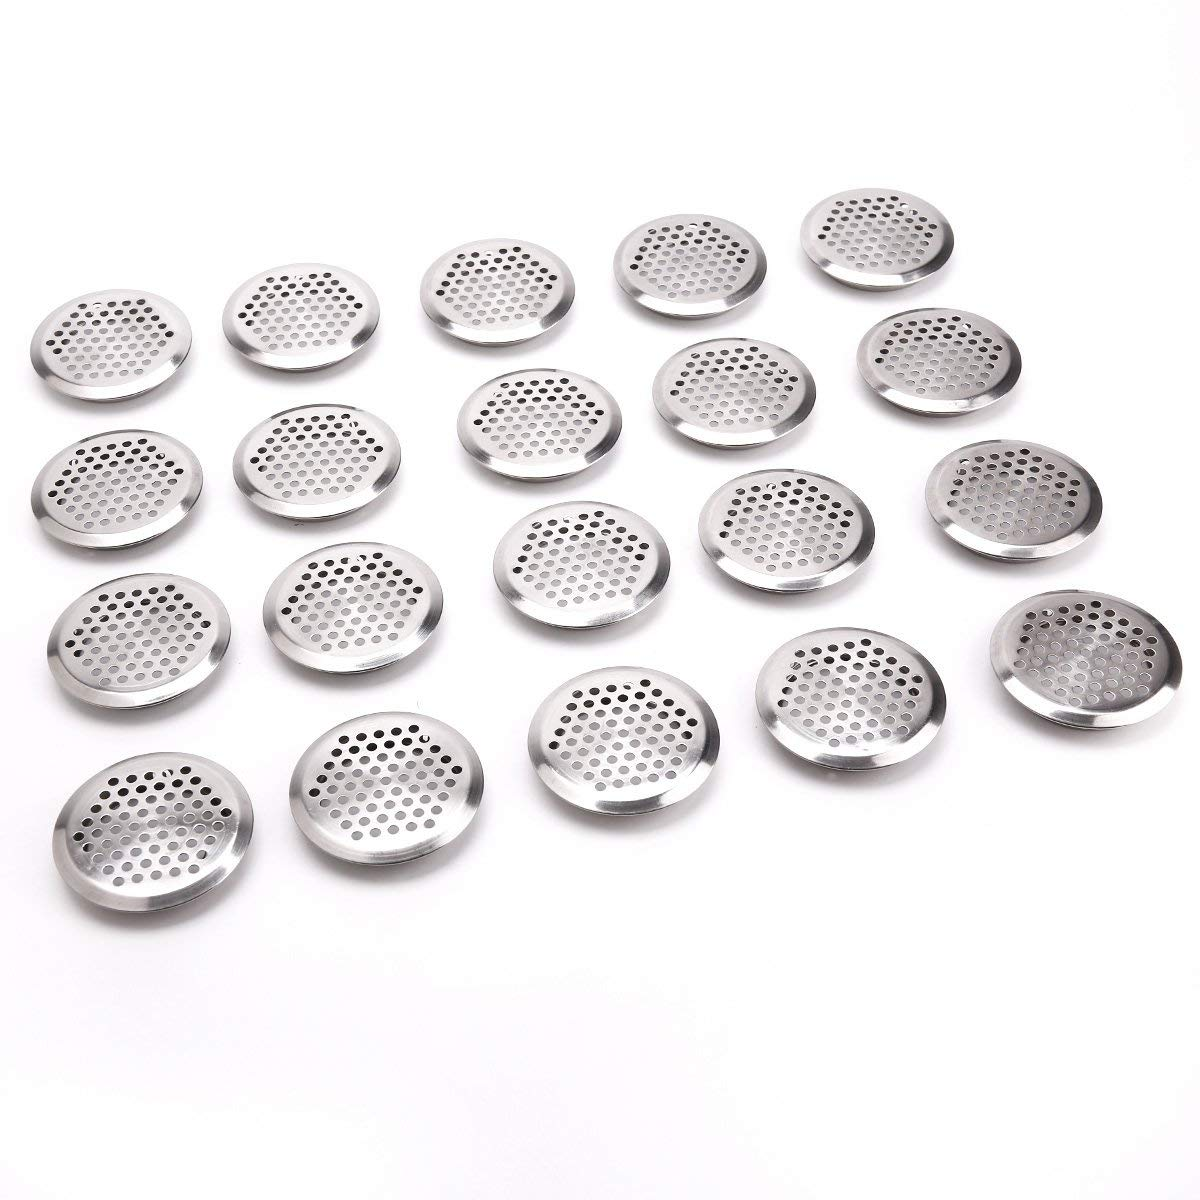 New 20 X Aeration Grid Ventilation Circle Lid 65mm Stainless Steel Silver